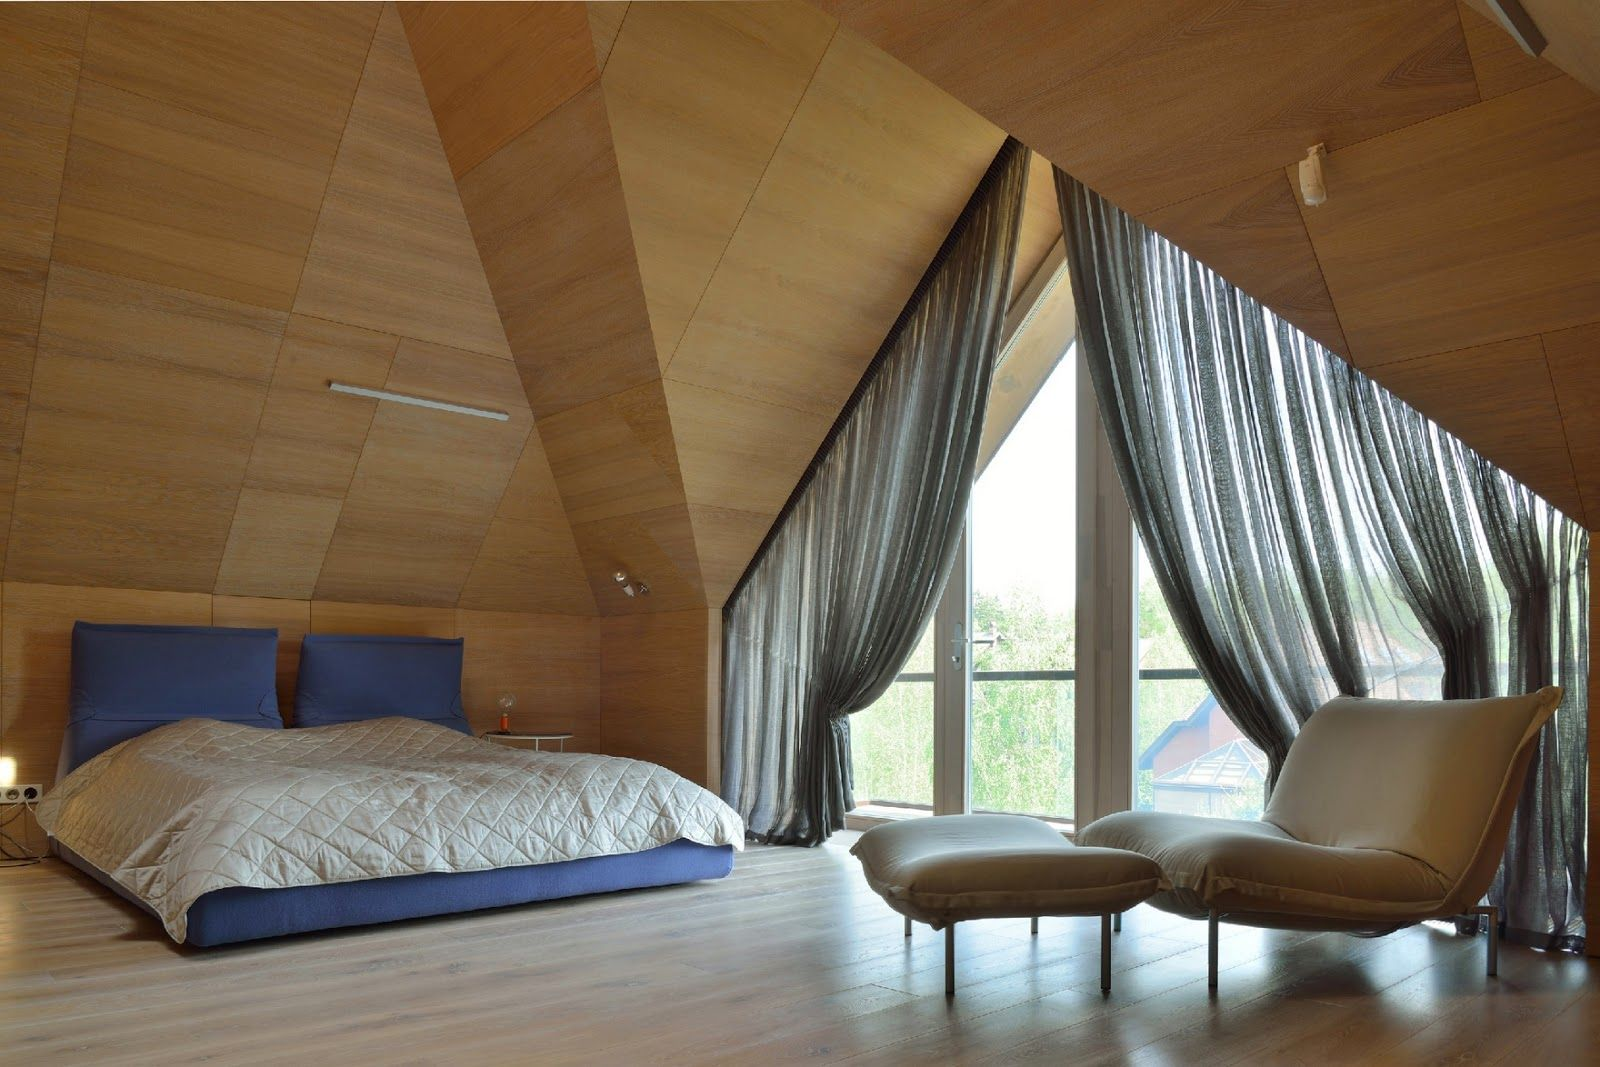 Are You Trying To Find Attic Room Conversion Ideas If You Re Fortunate Enough To Have An Attic That Is Attic Rooms Attic Bedroom Designs Modern Bedroom Design